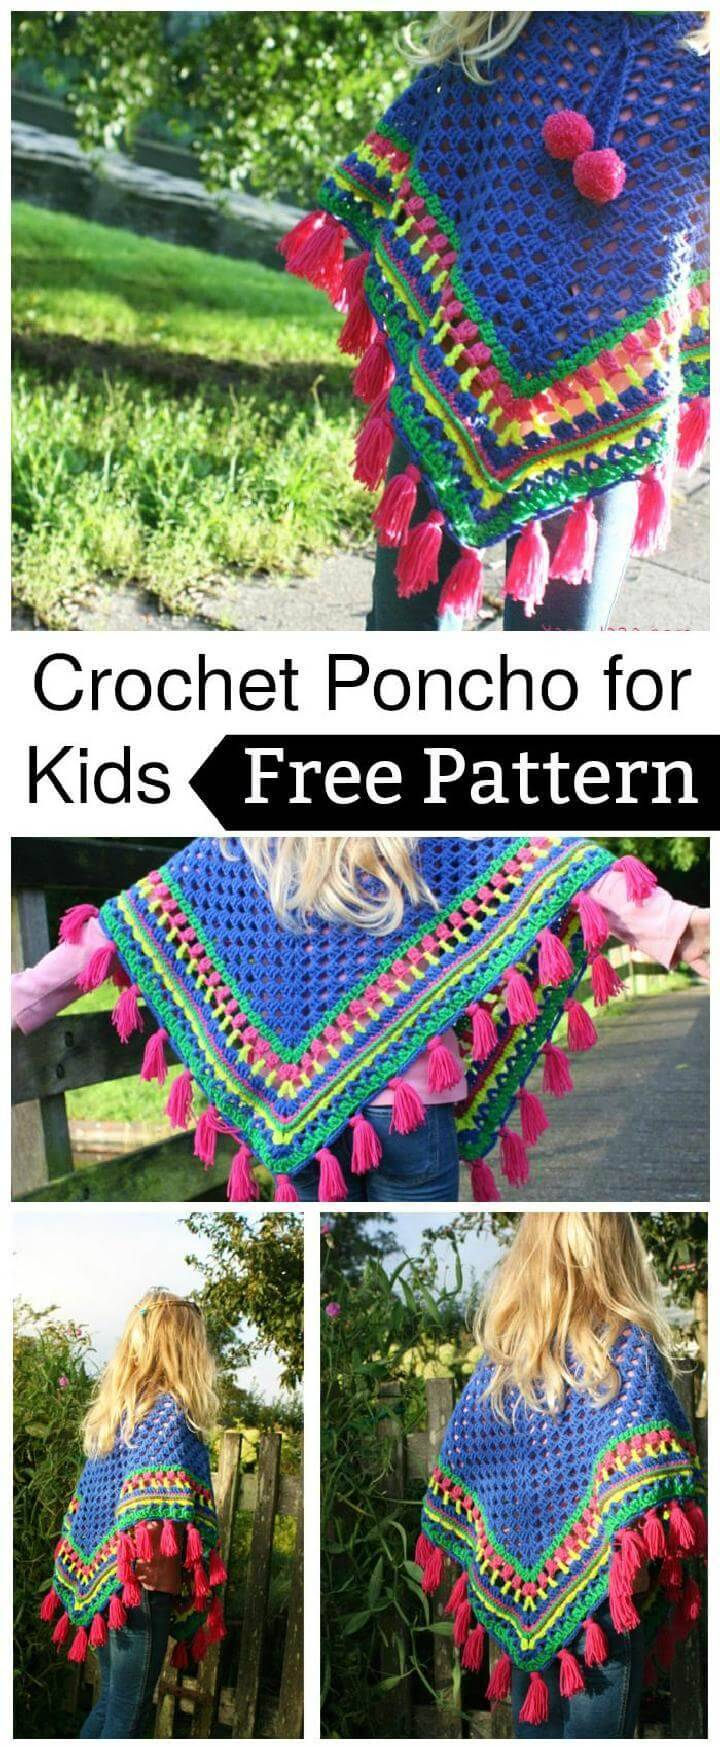 20 Free Crochet Summer Poncho Patterns for Women\'s - DIY & Crafts